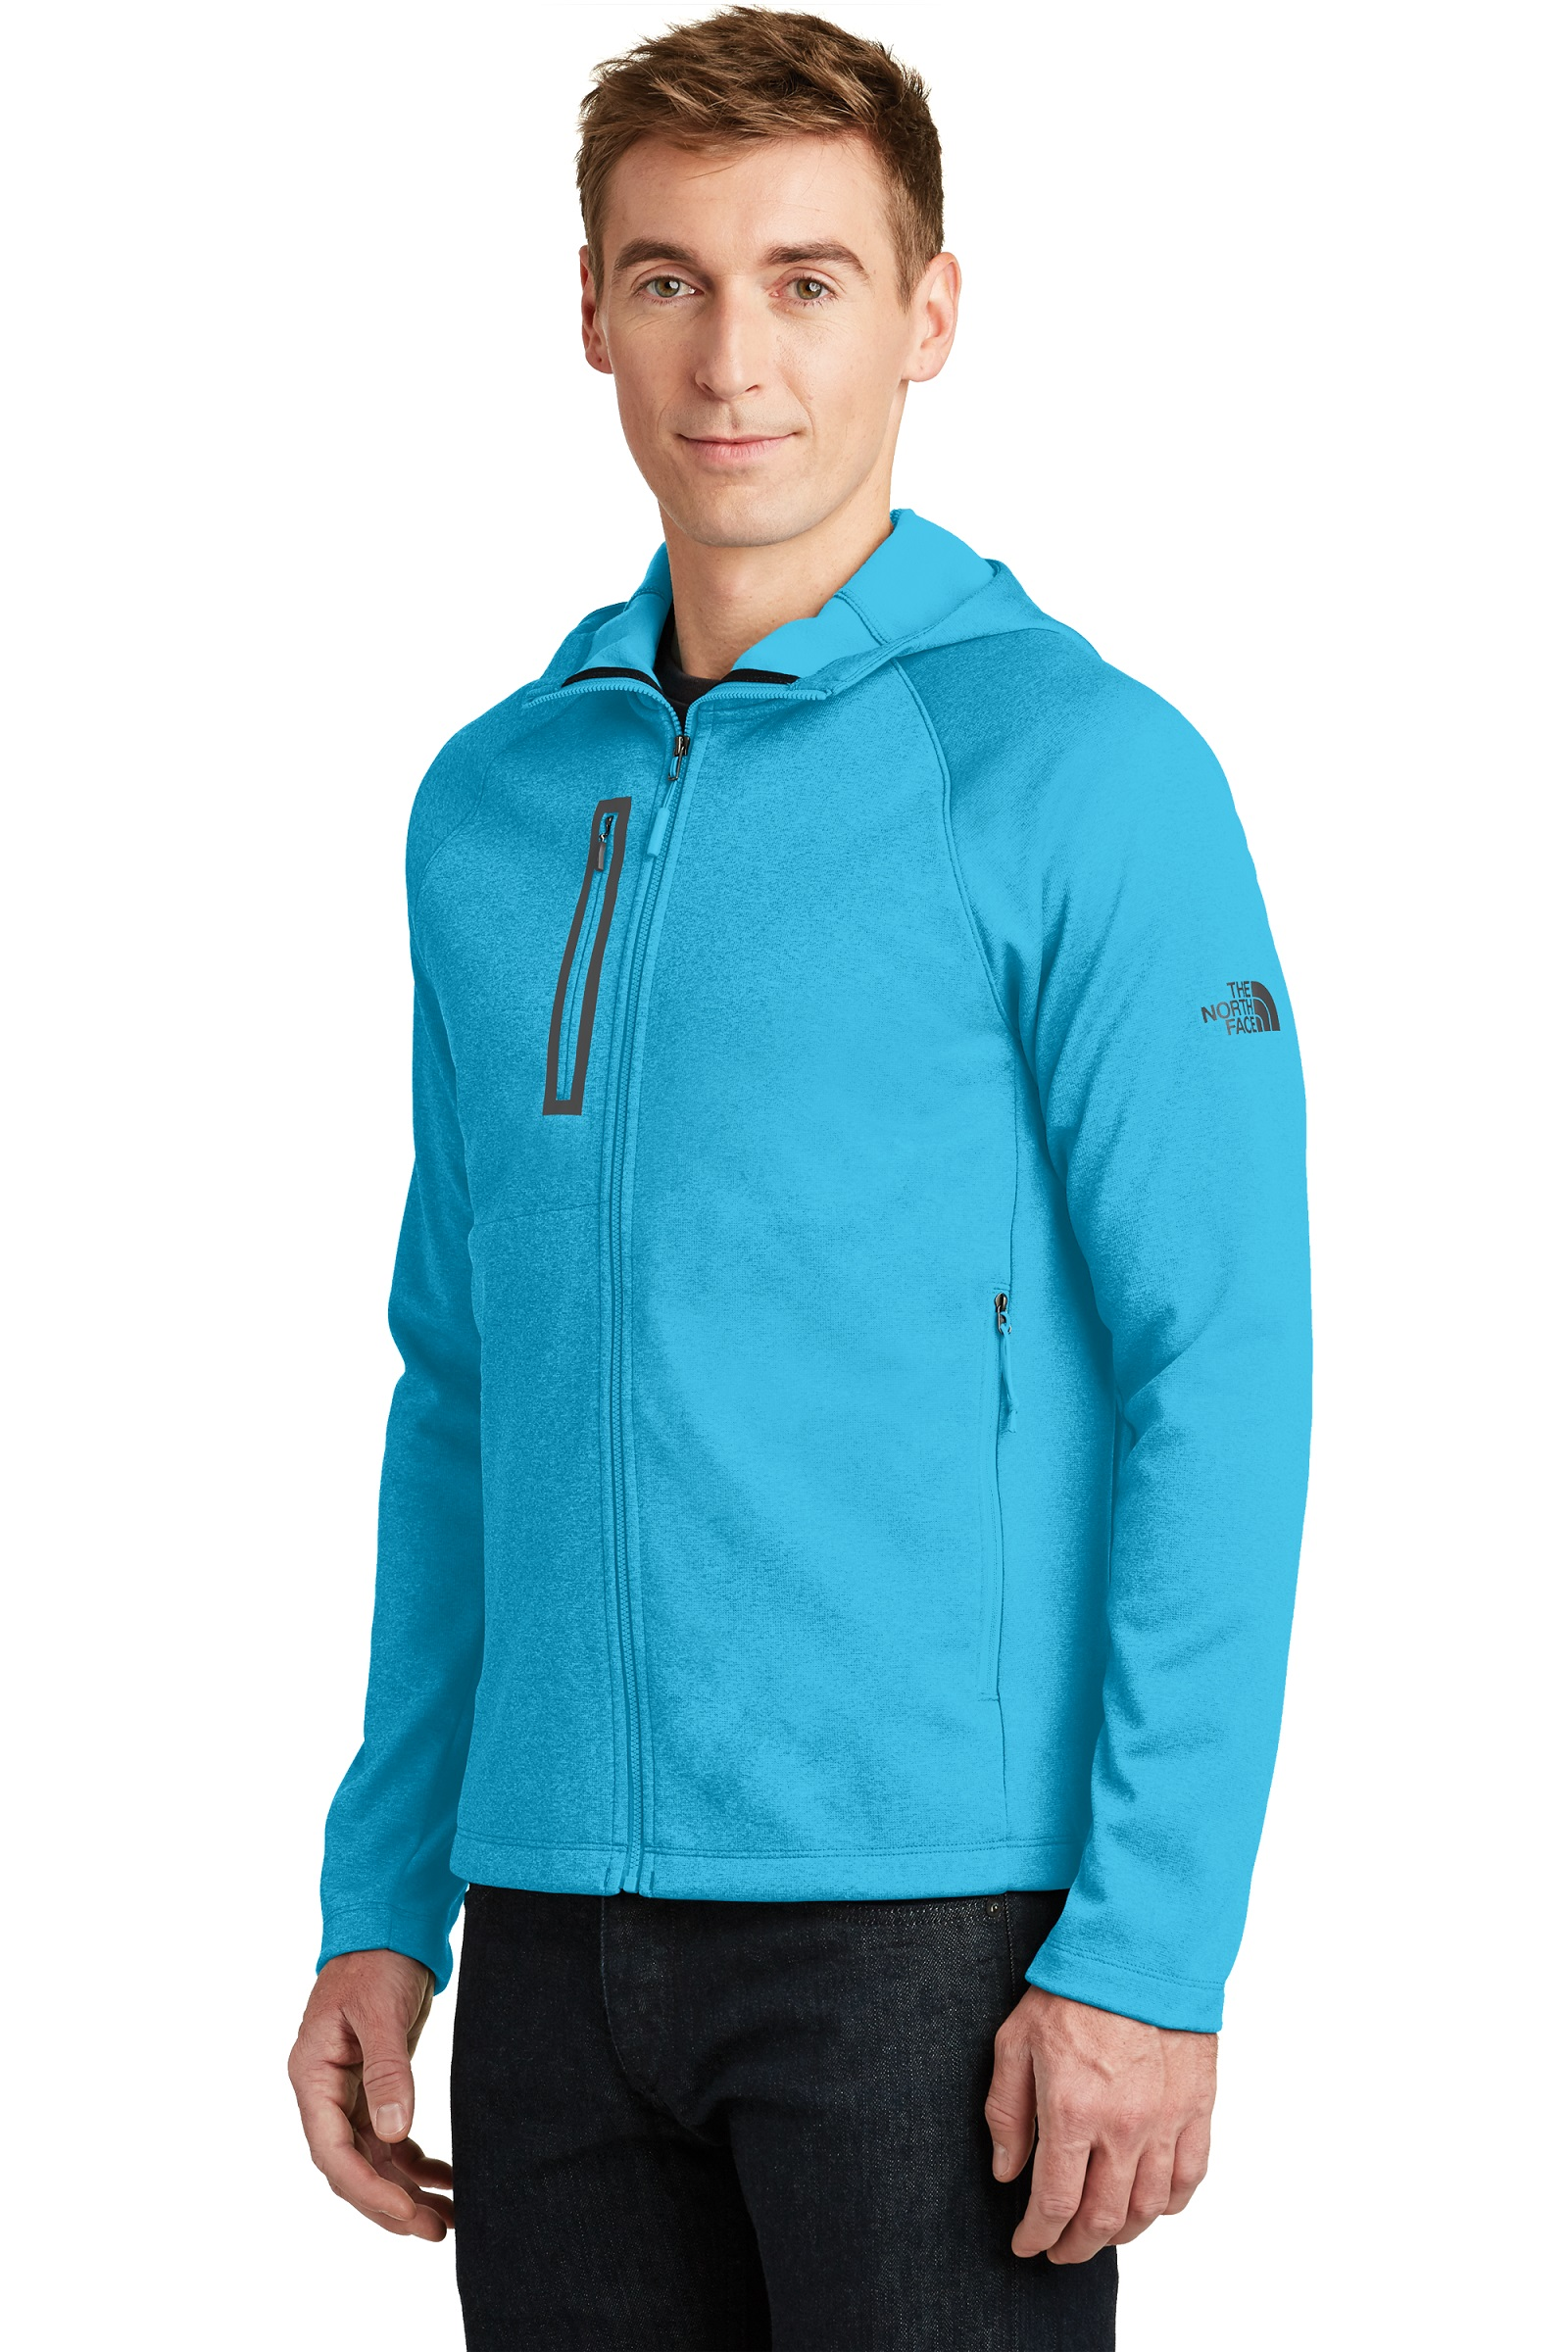 The North Face  Embroidered Men's Canyon Flats Fleece Hooded Jacket